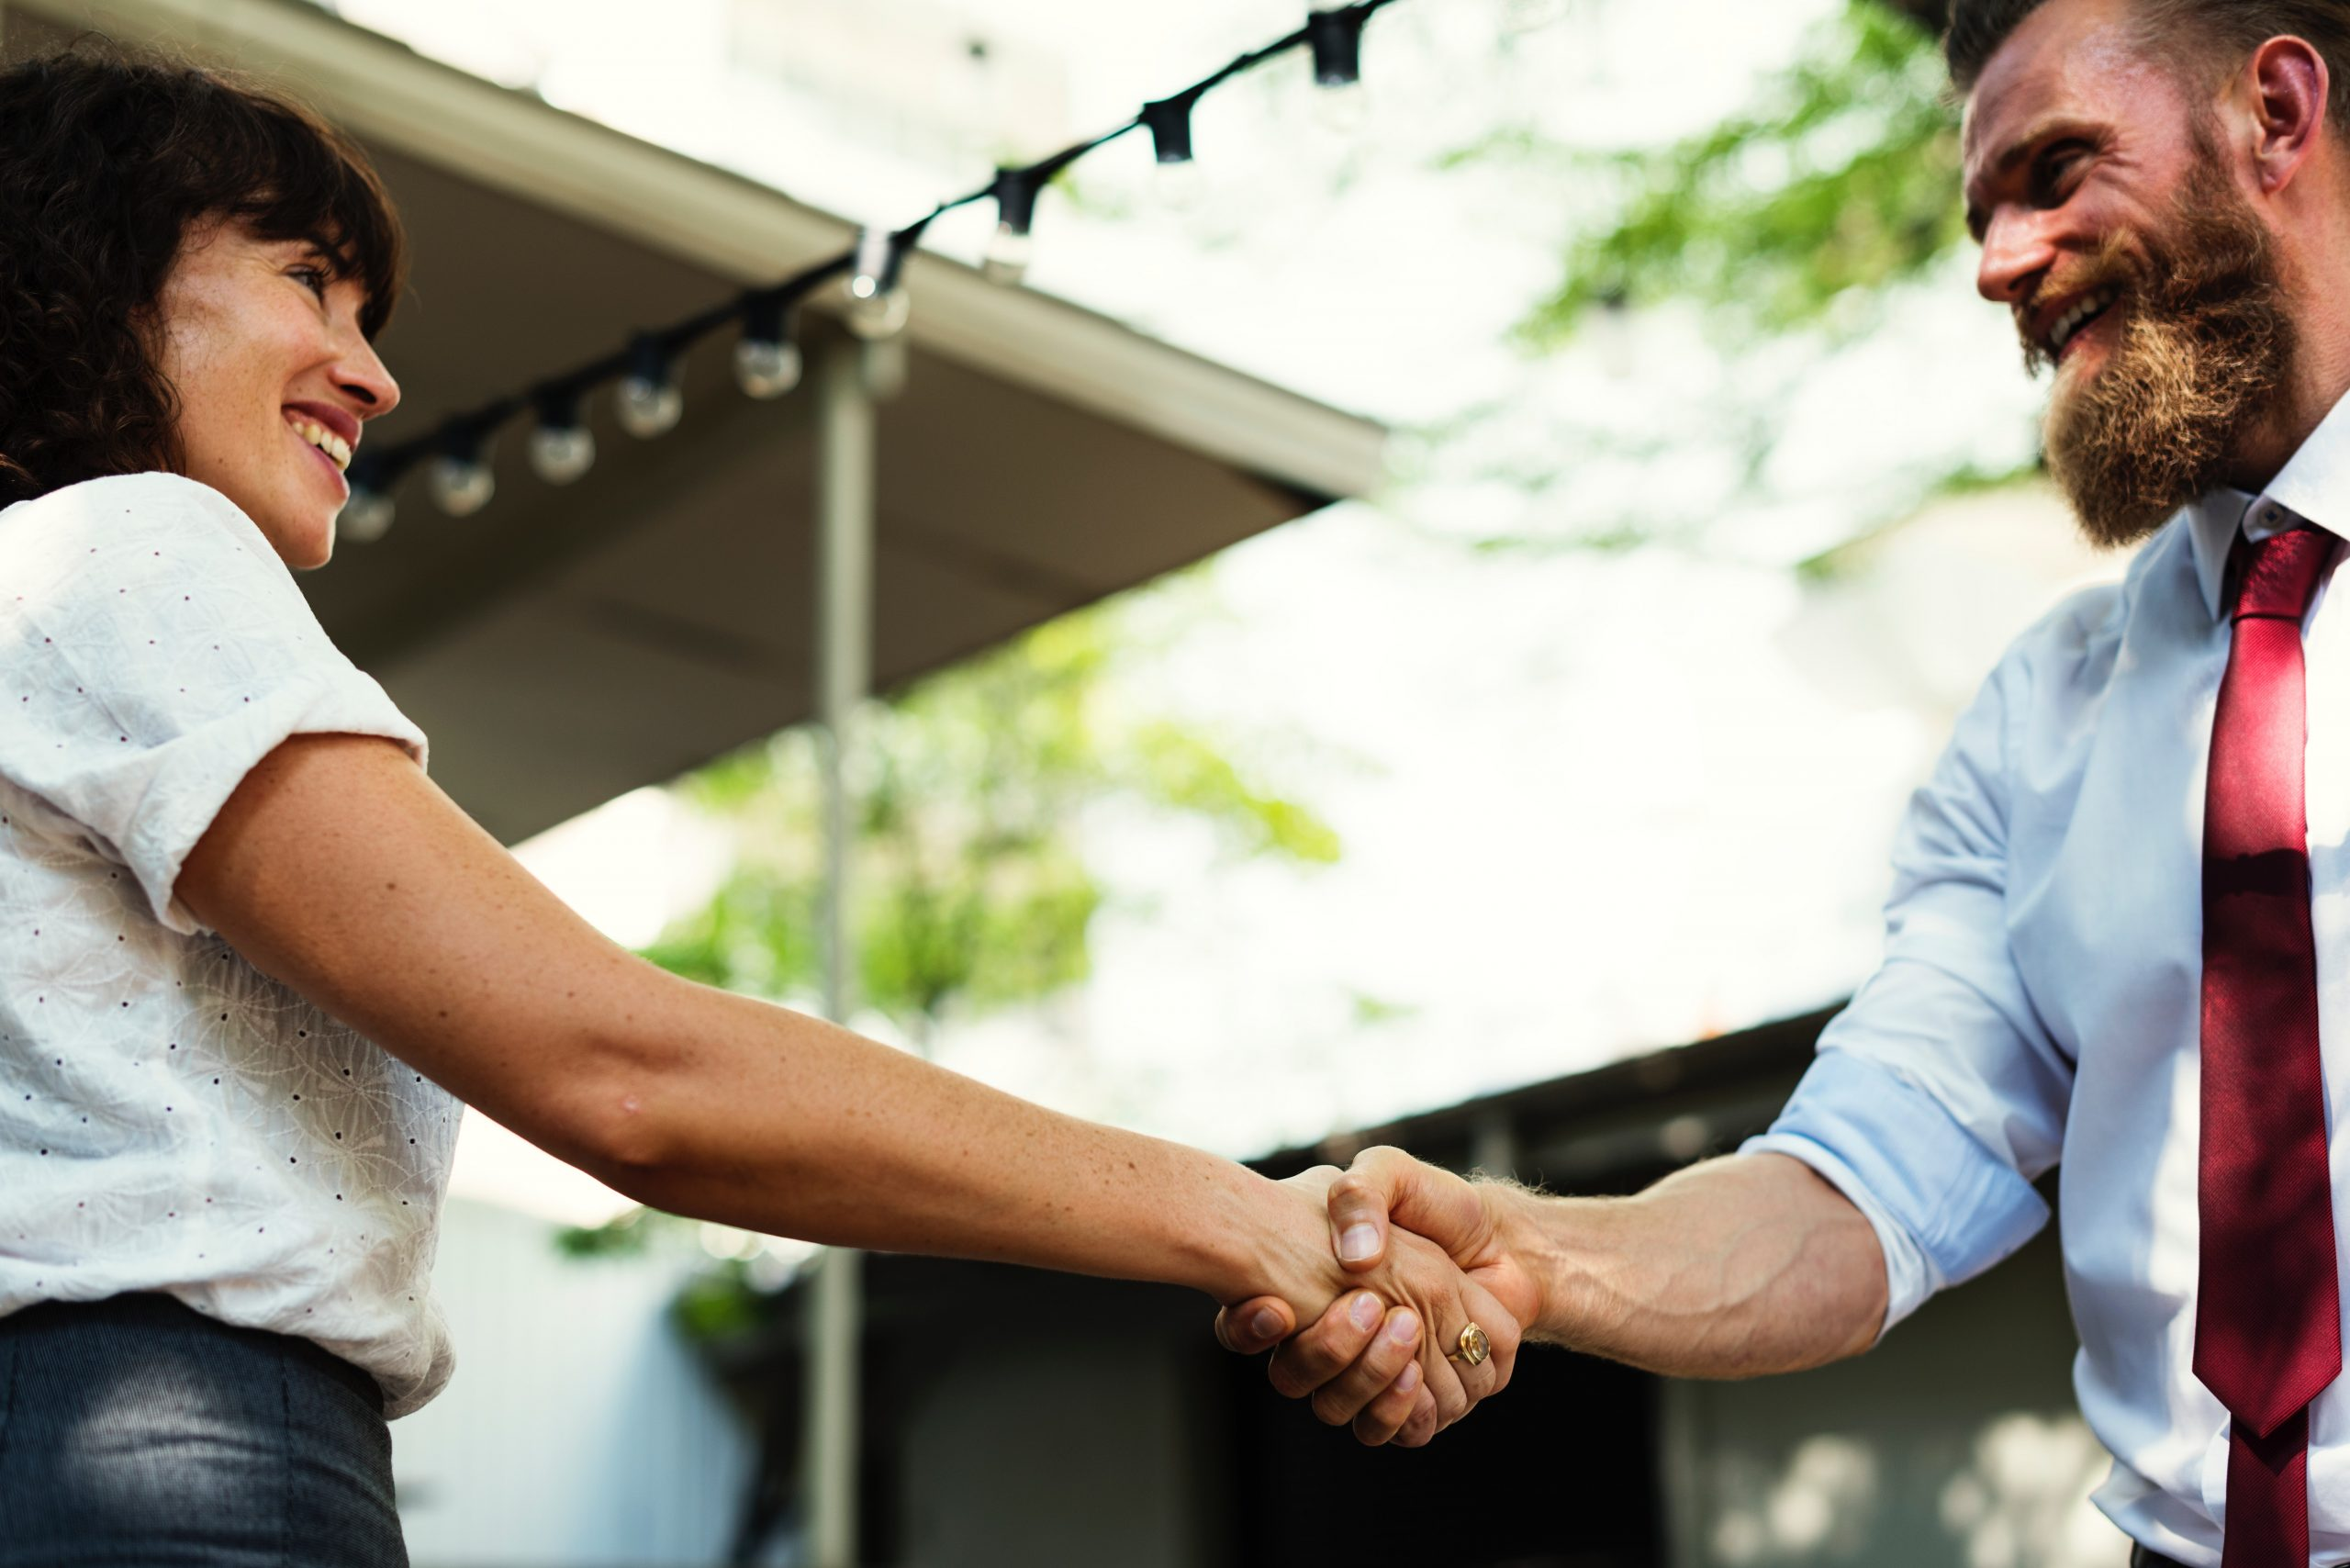 Woman and Man Shaking Hands Outdoors